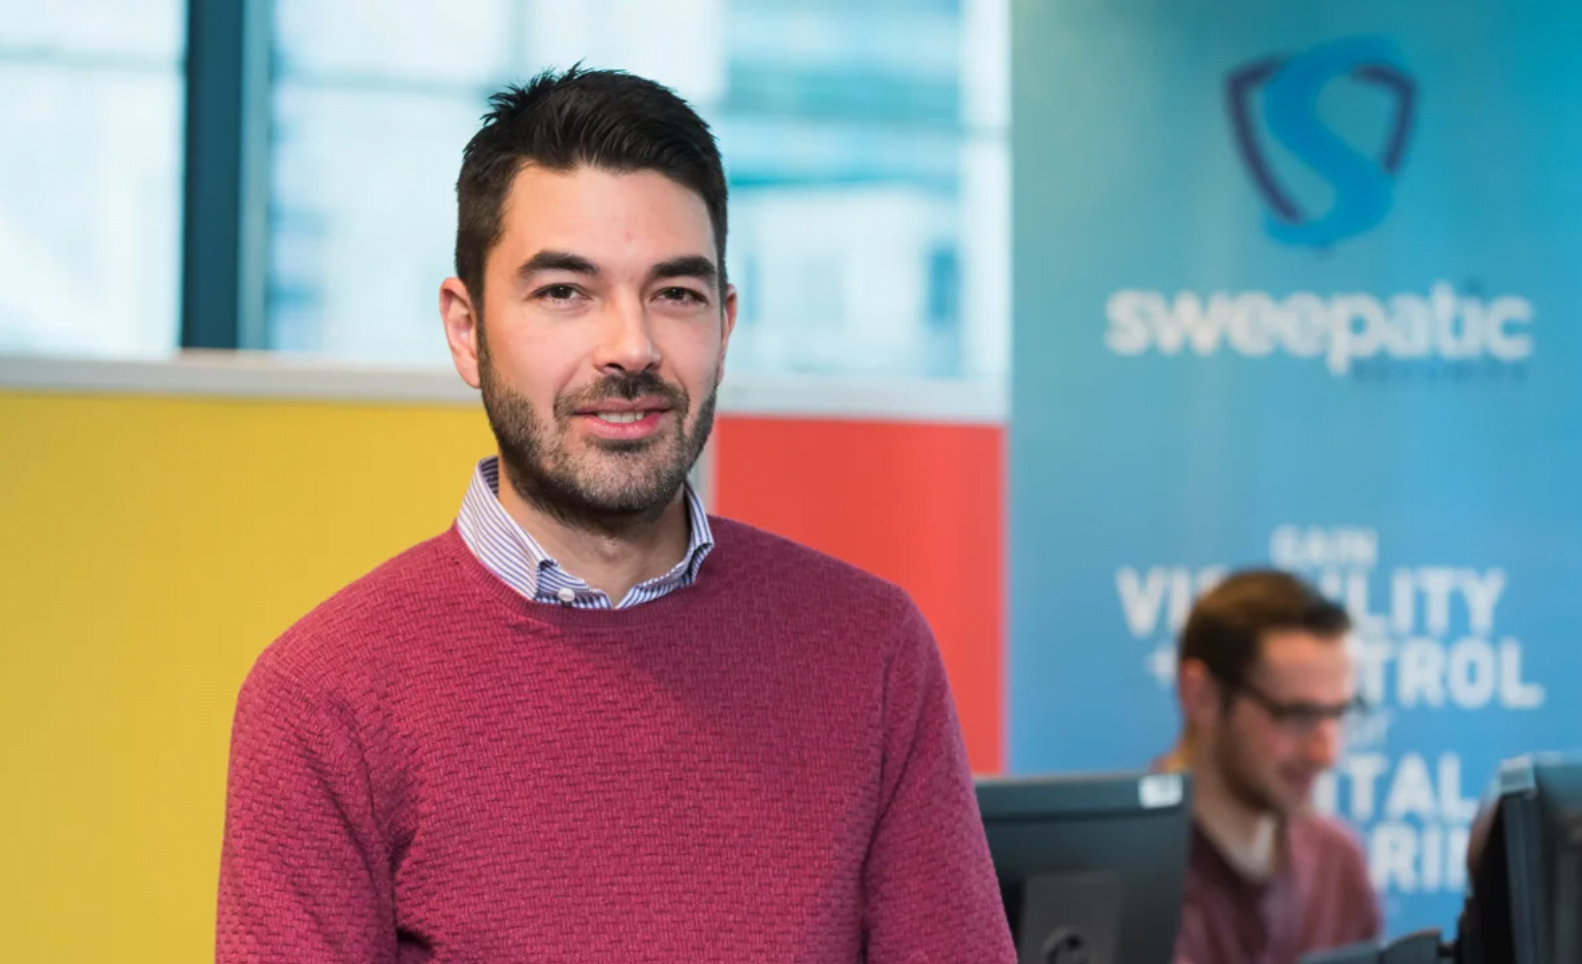 Belgian cybersecurity startup Sweepatic secures €1M Series A funding from eCAPITAL